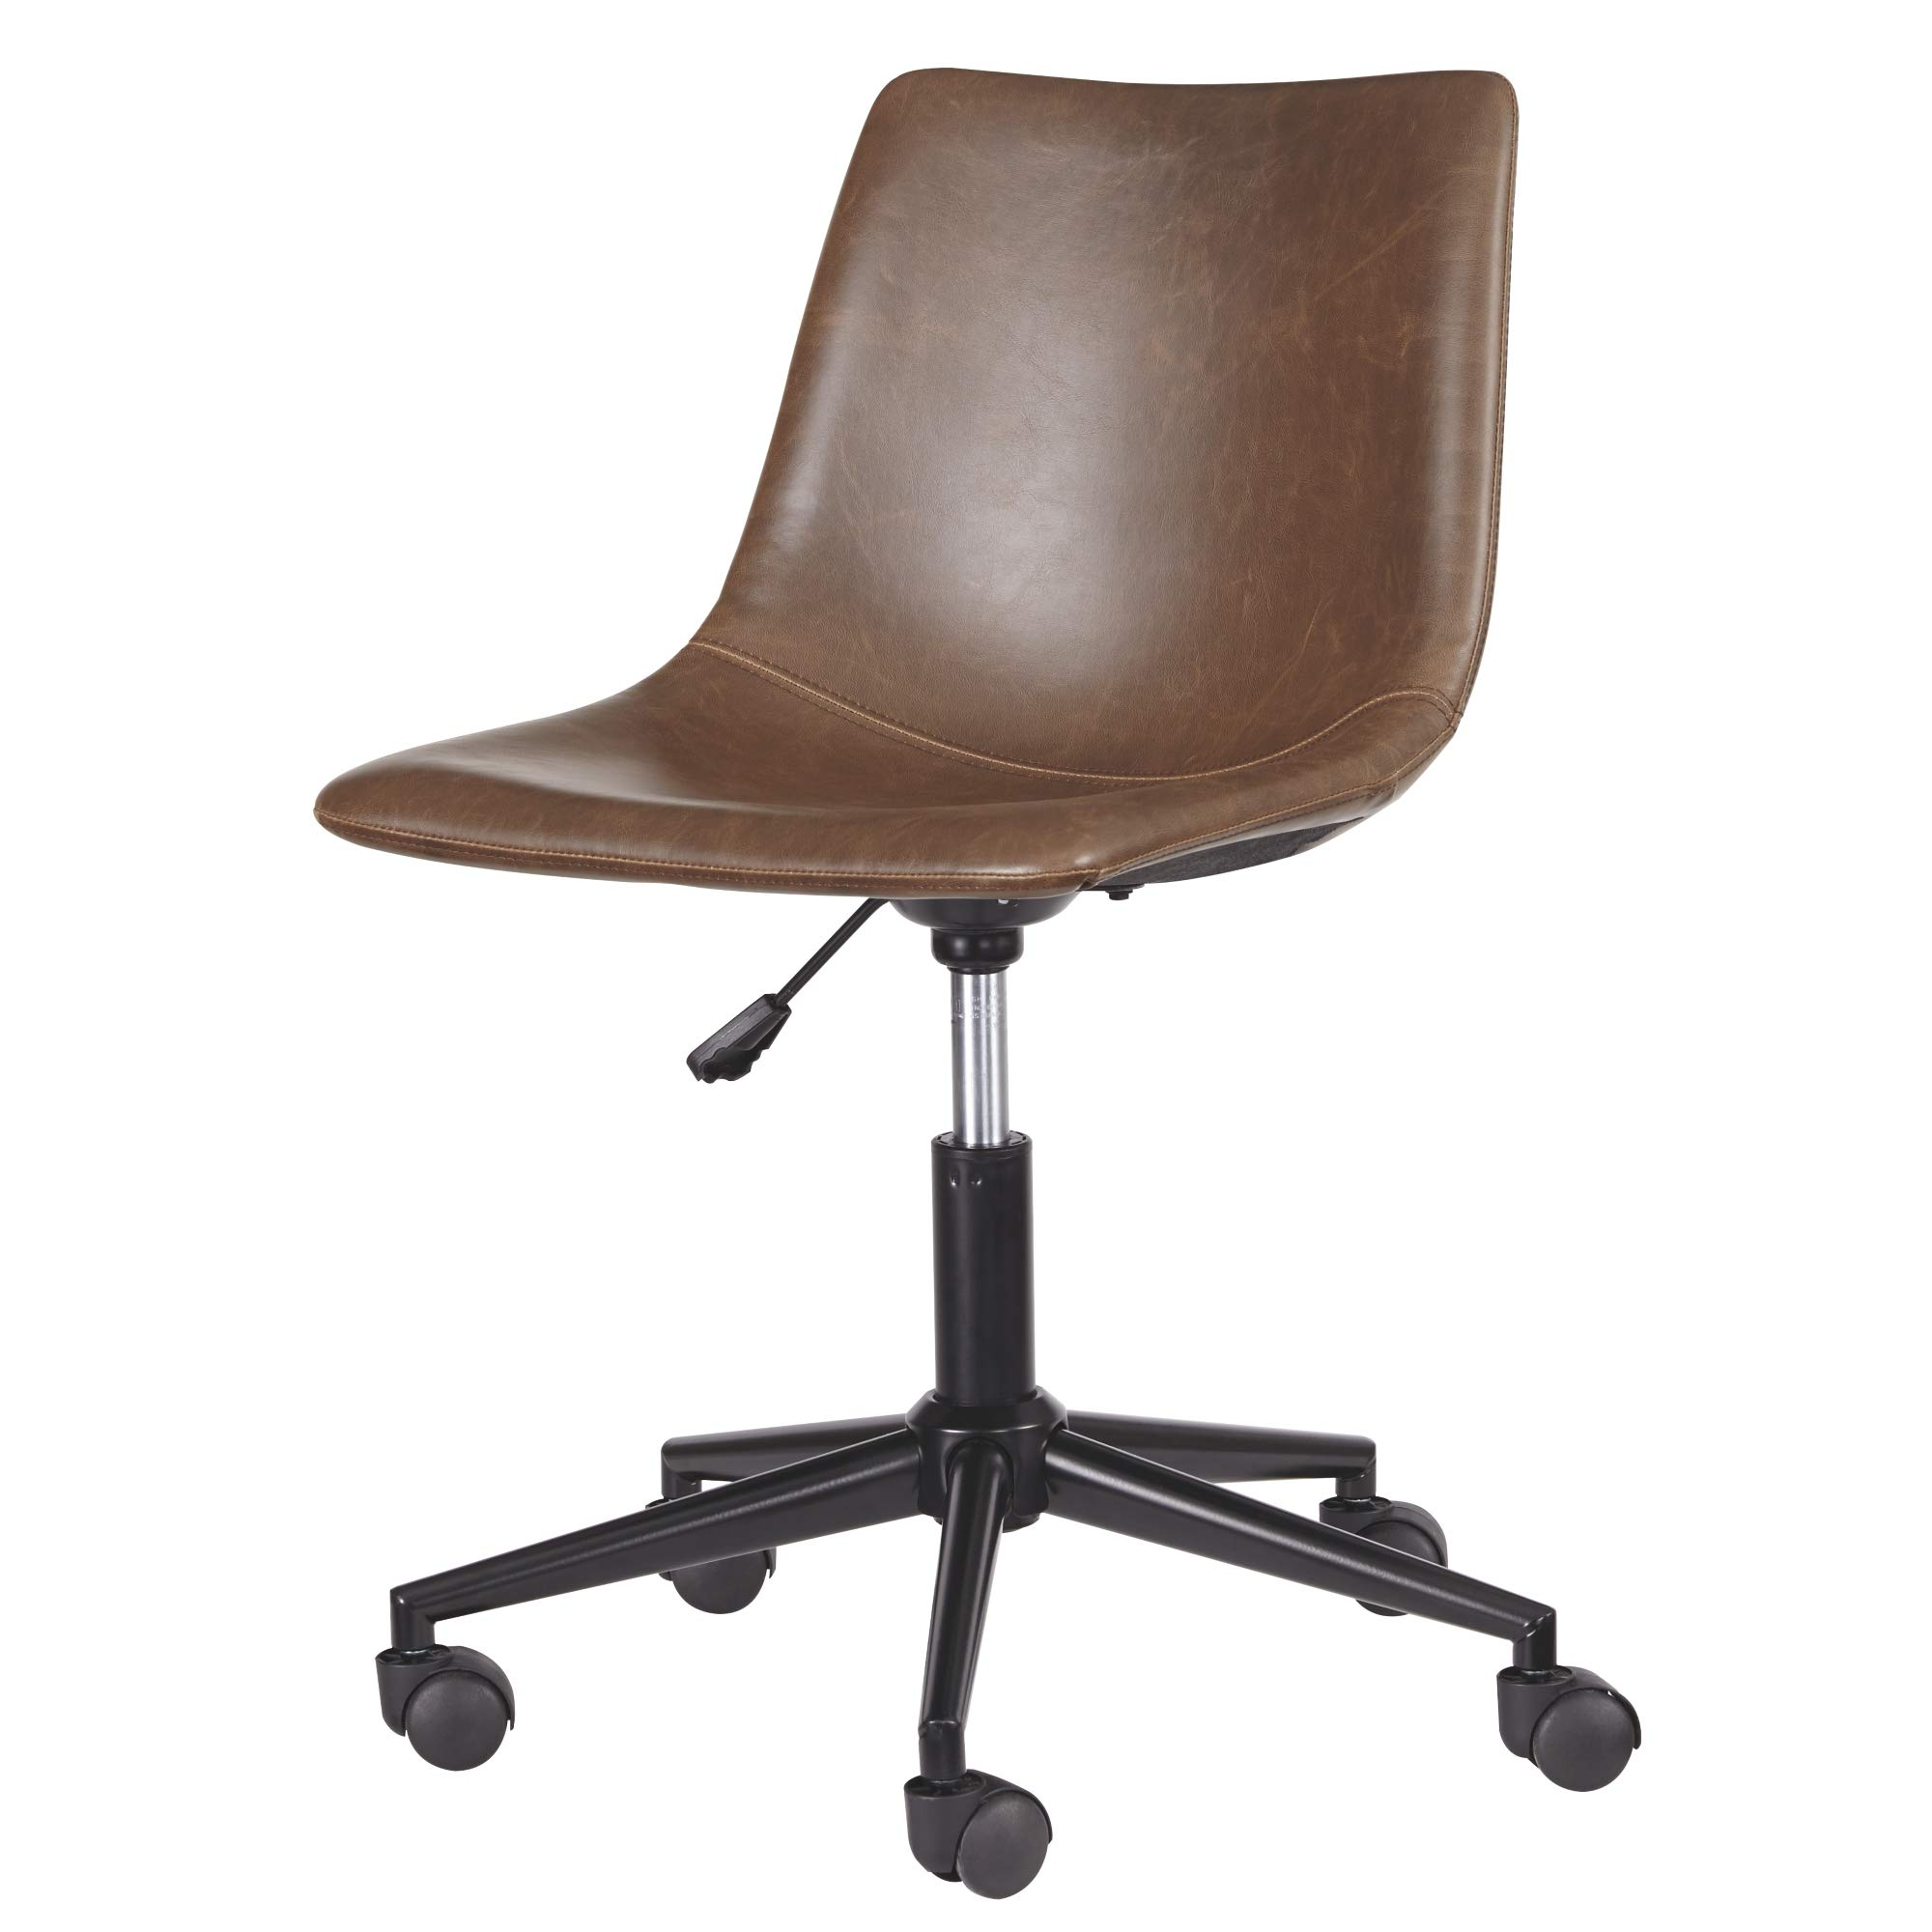 Ashley Furniture Signature Design - Adjustable Swivel Office Chair - Casual - Brown by Signature Design by Ashley